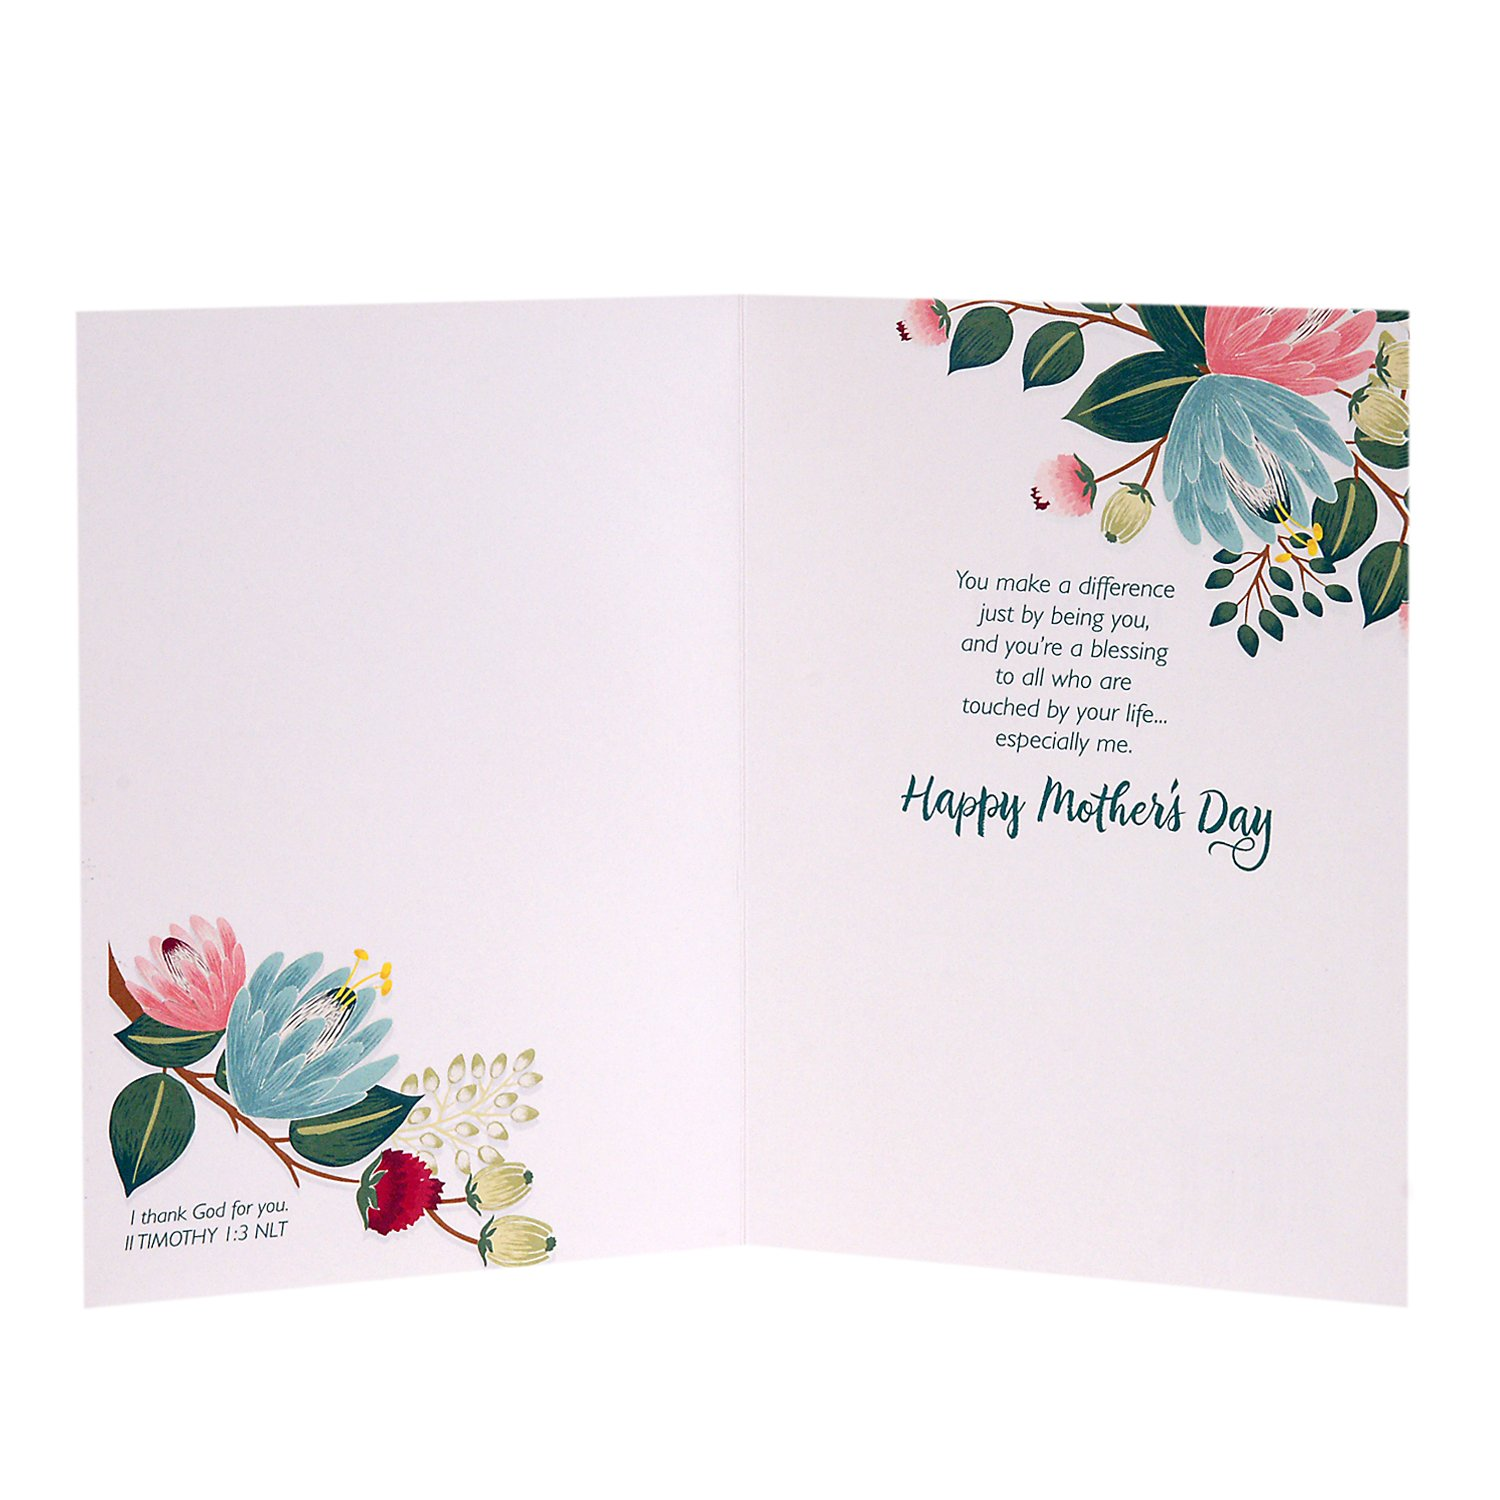 Dayspring religious mothers day greeting card kindness beauty dayspring religious mothers day greeting card kindness beauty grace love 0599mbc9022 greeting cards office products tibs m4hsunfo